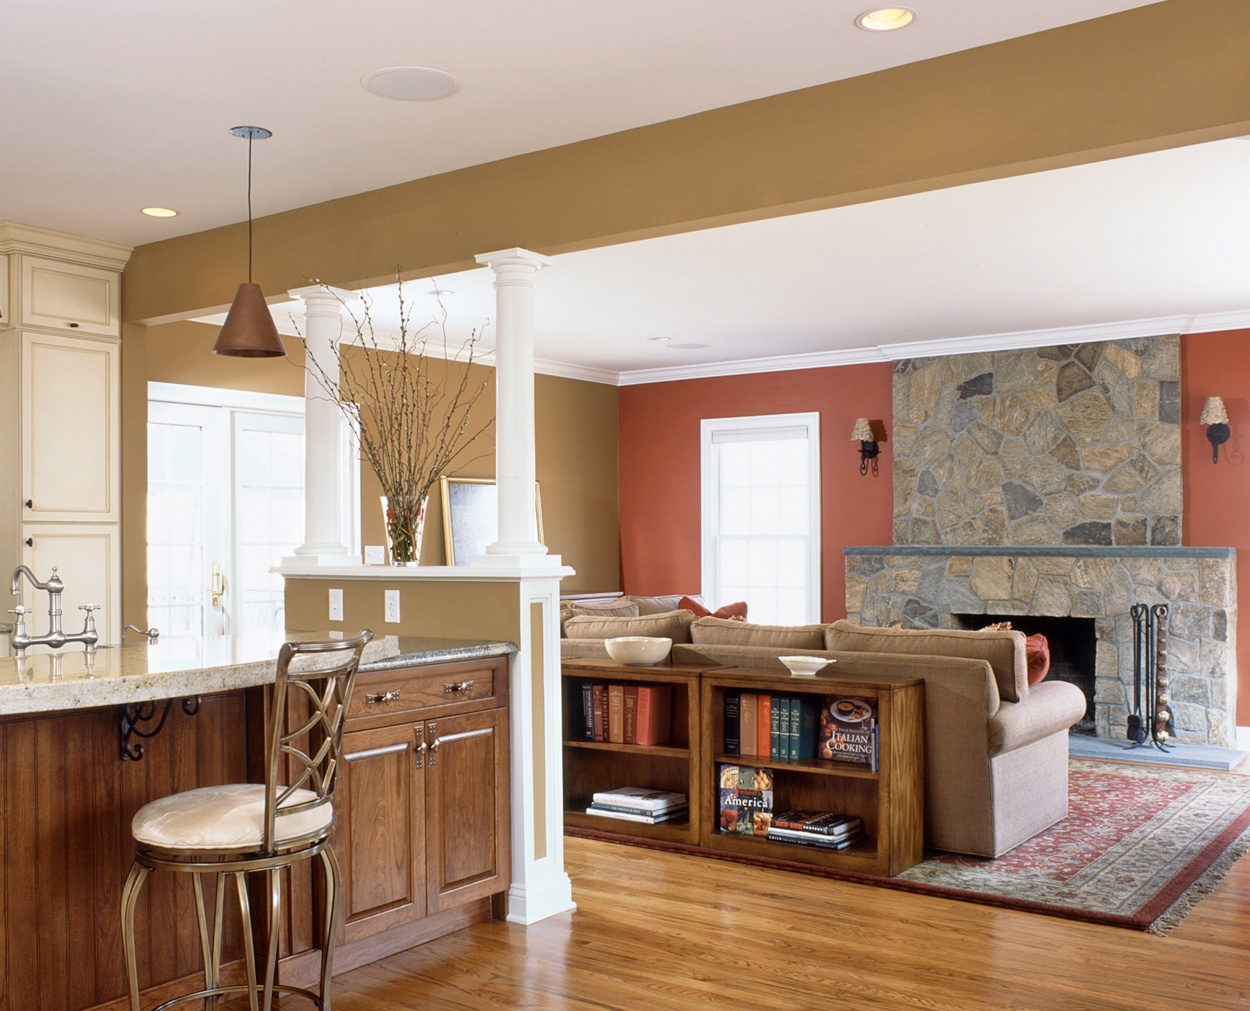 View from the kitchen to the livingroom towards the stone veneer fireplace.